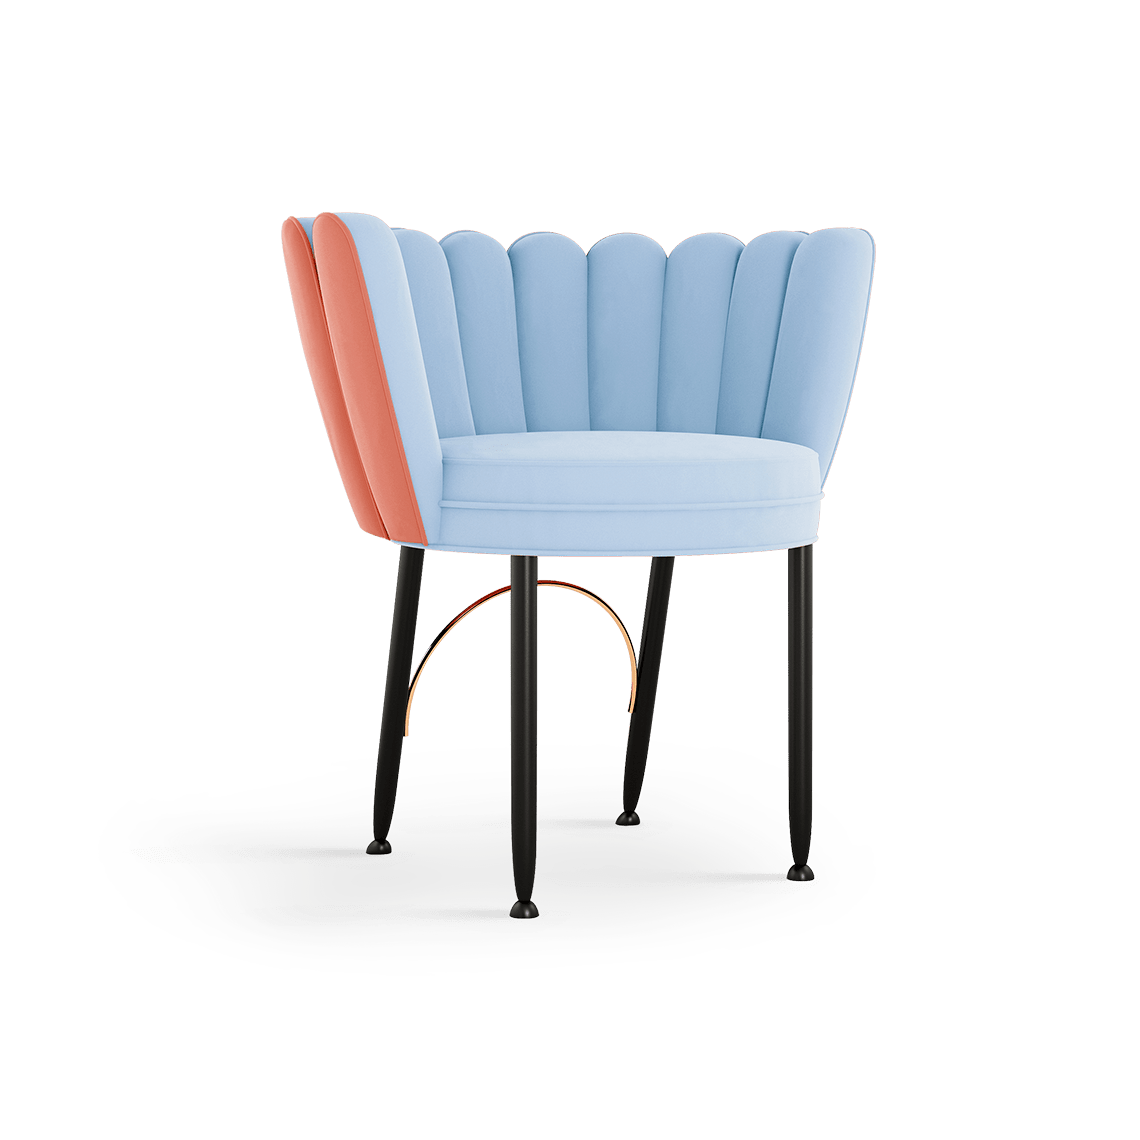 Angel Mid-Century Dining Chair in blue and coral cotton velvet